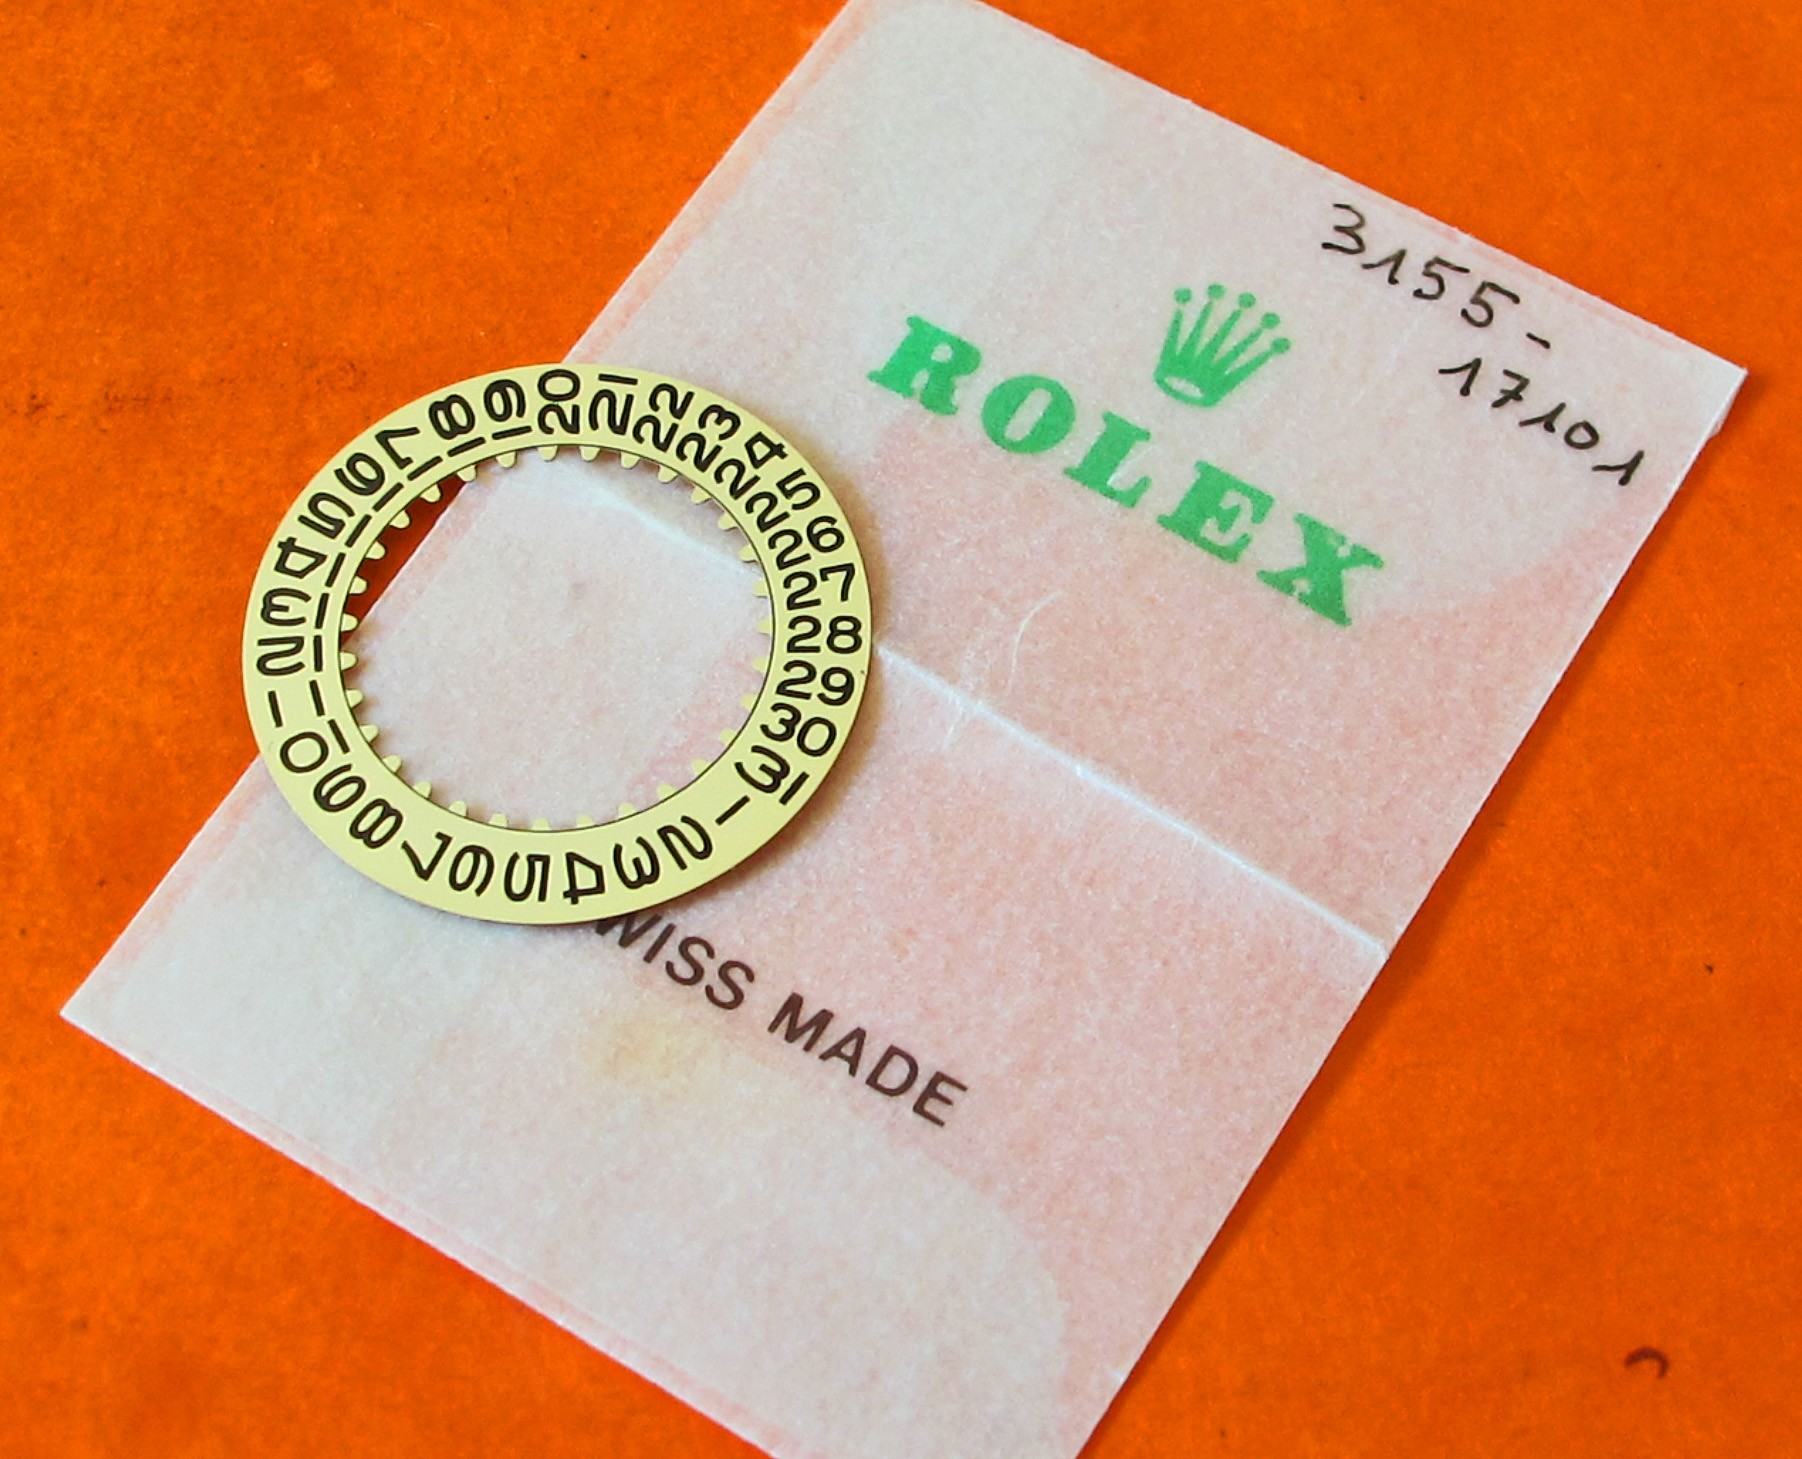 ROLEX Submariner 1680 gold Date Disc 1675 cal 1570 1560 1575